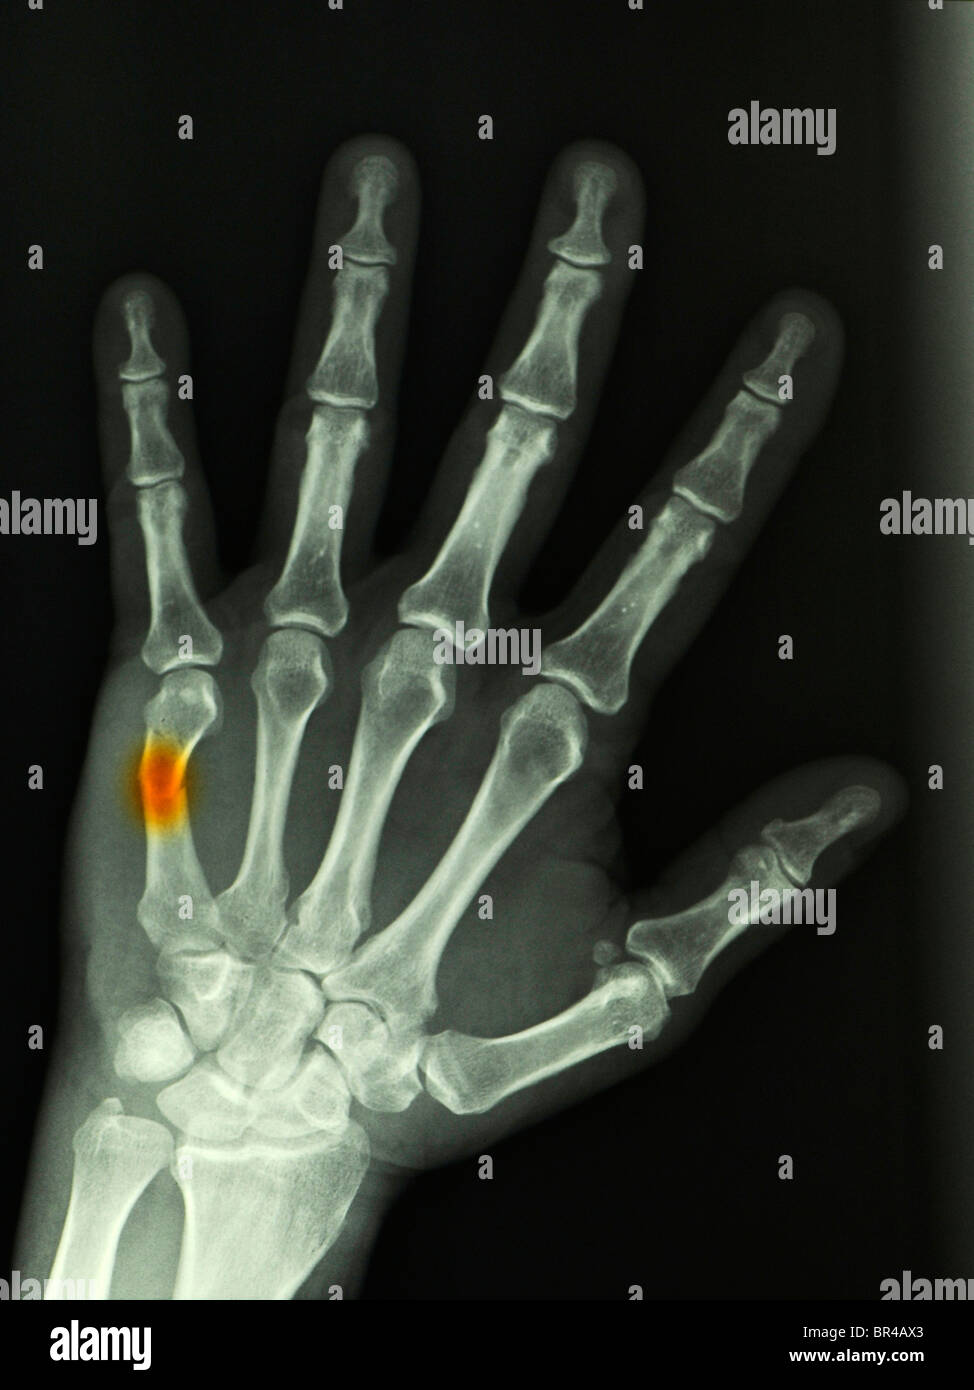 Bone Fracture Hand Stock Photos & Bone Fracture Hand Stock Images ...